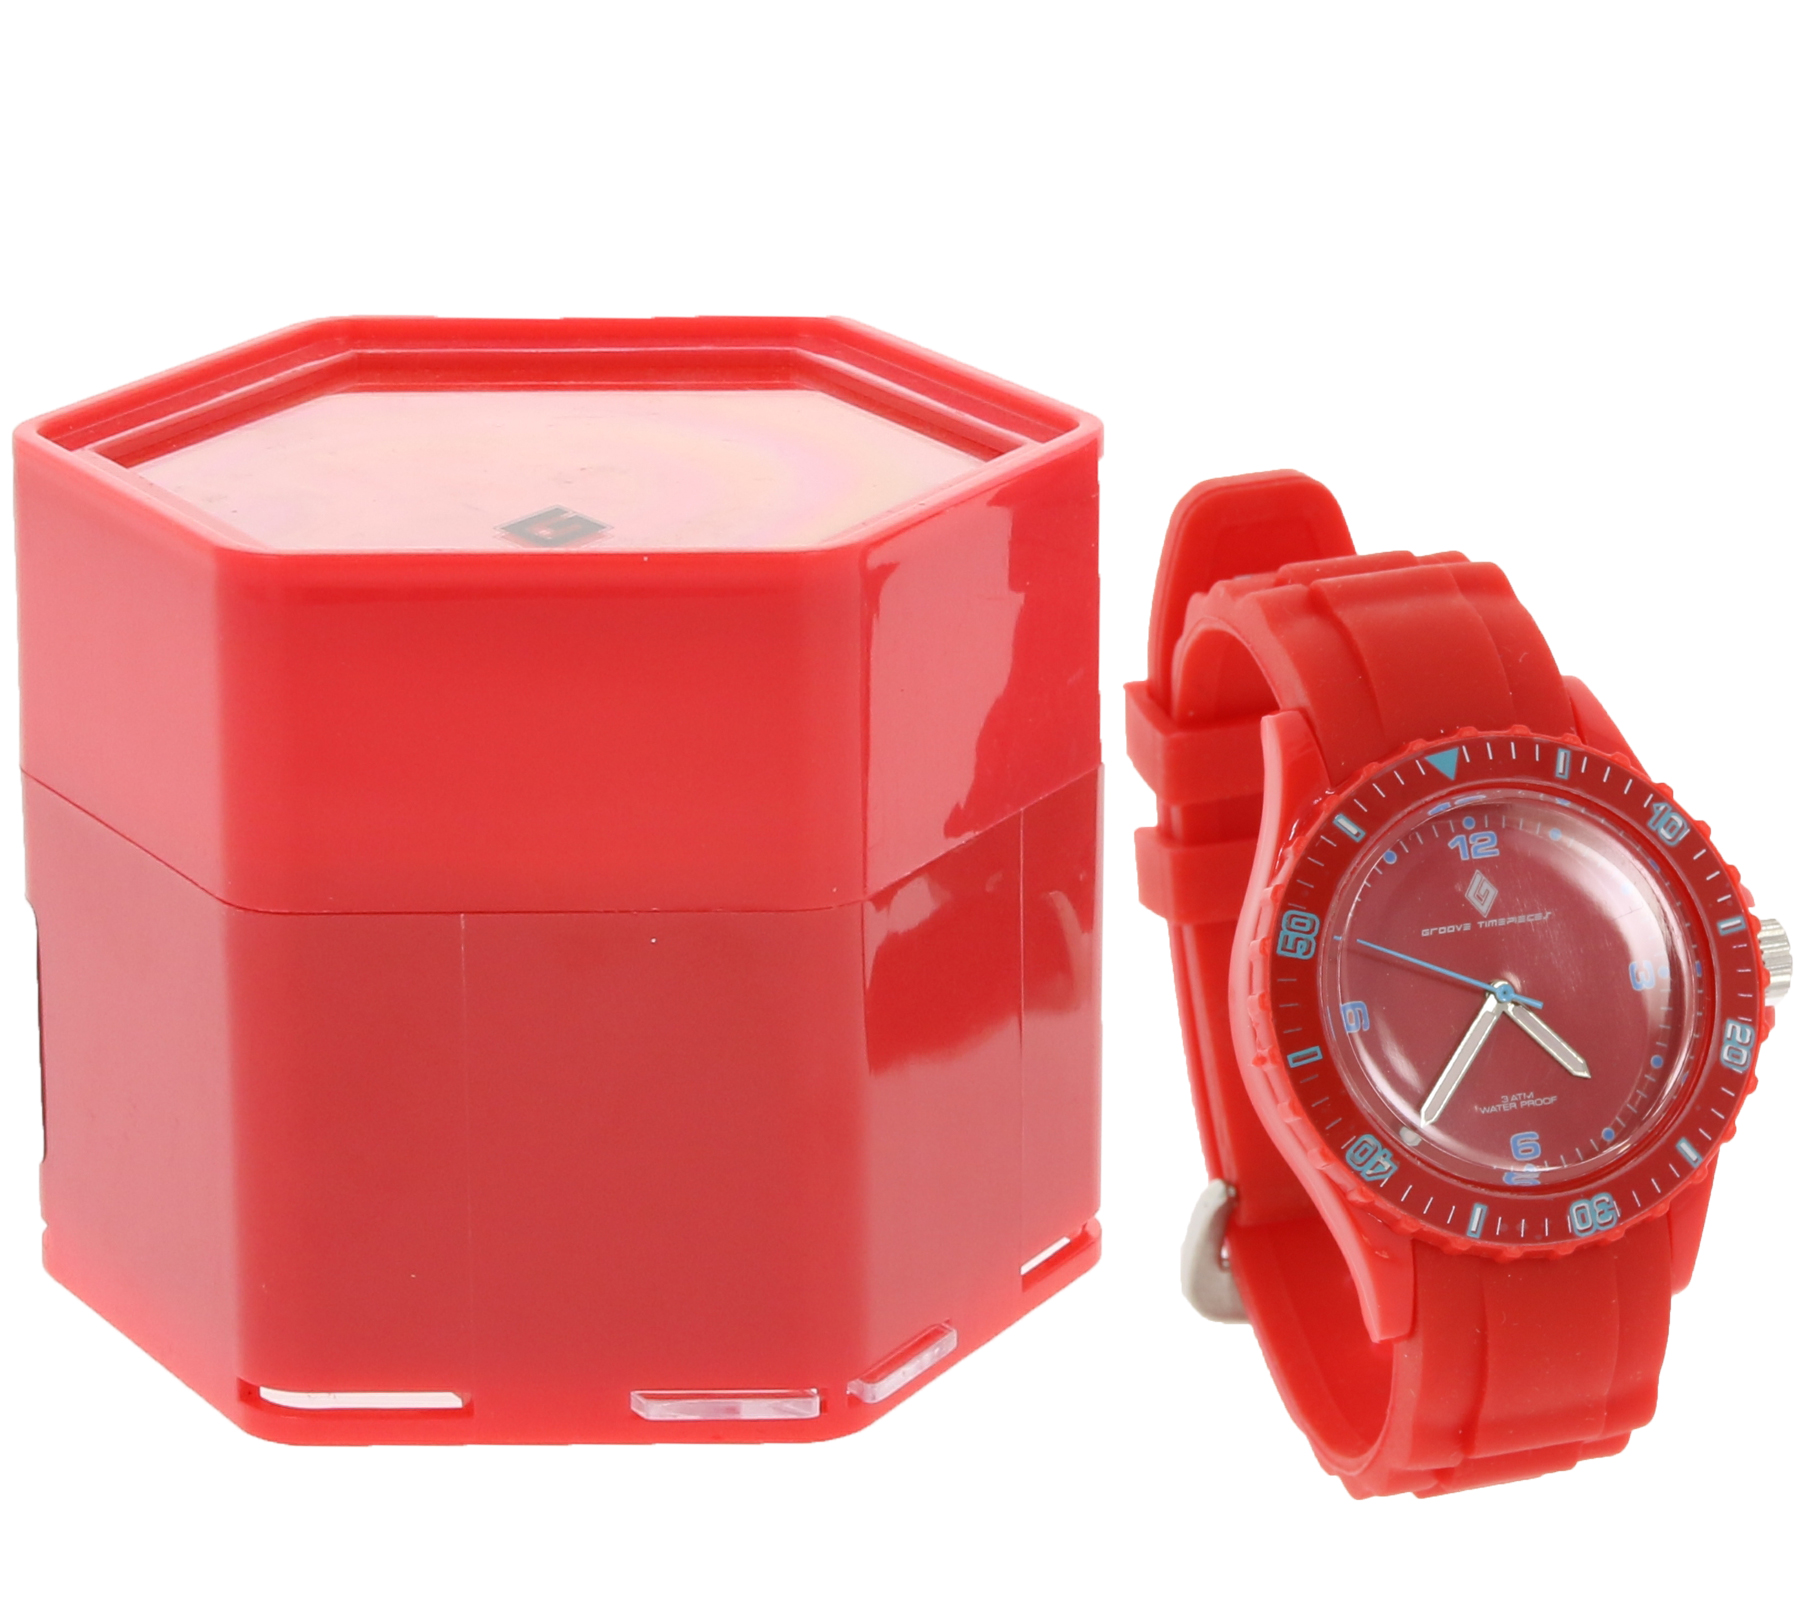 GROOVE TIMEPIECES Gift Set Bracelet Watch Trendy Watch with Pin Buckle Red |